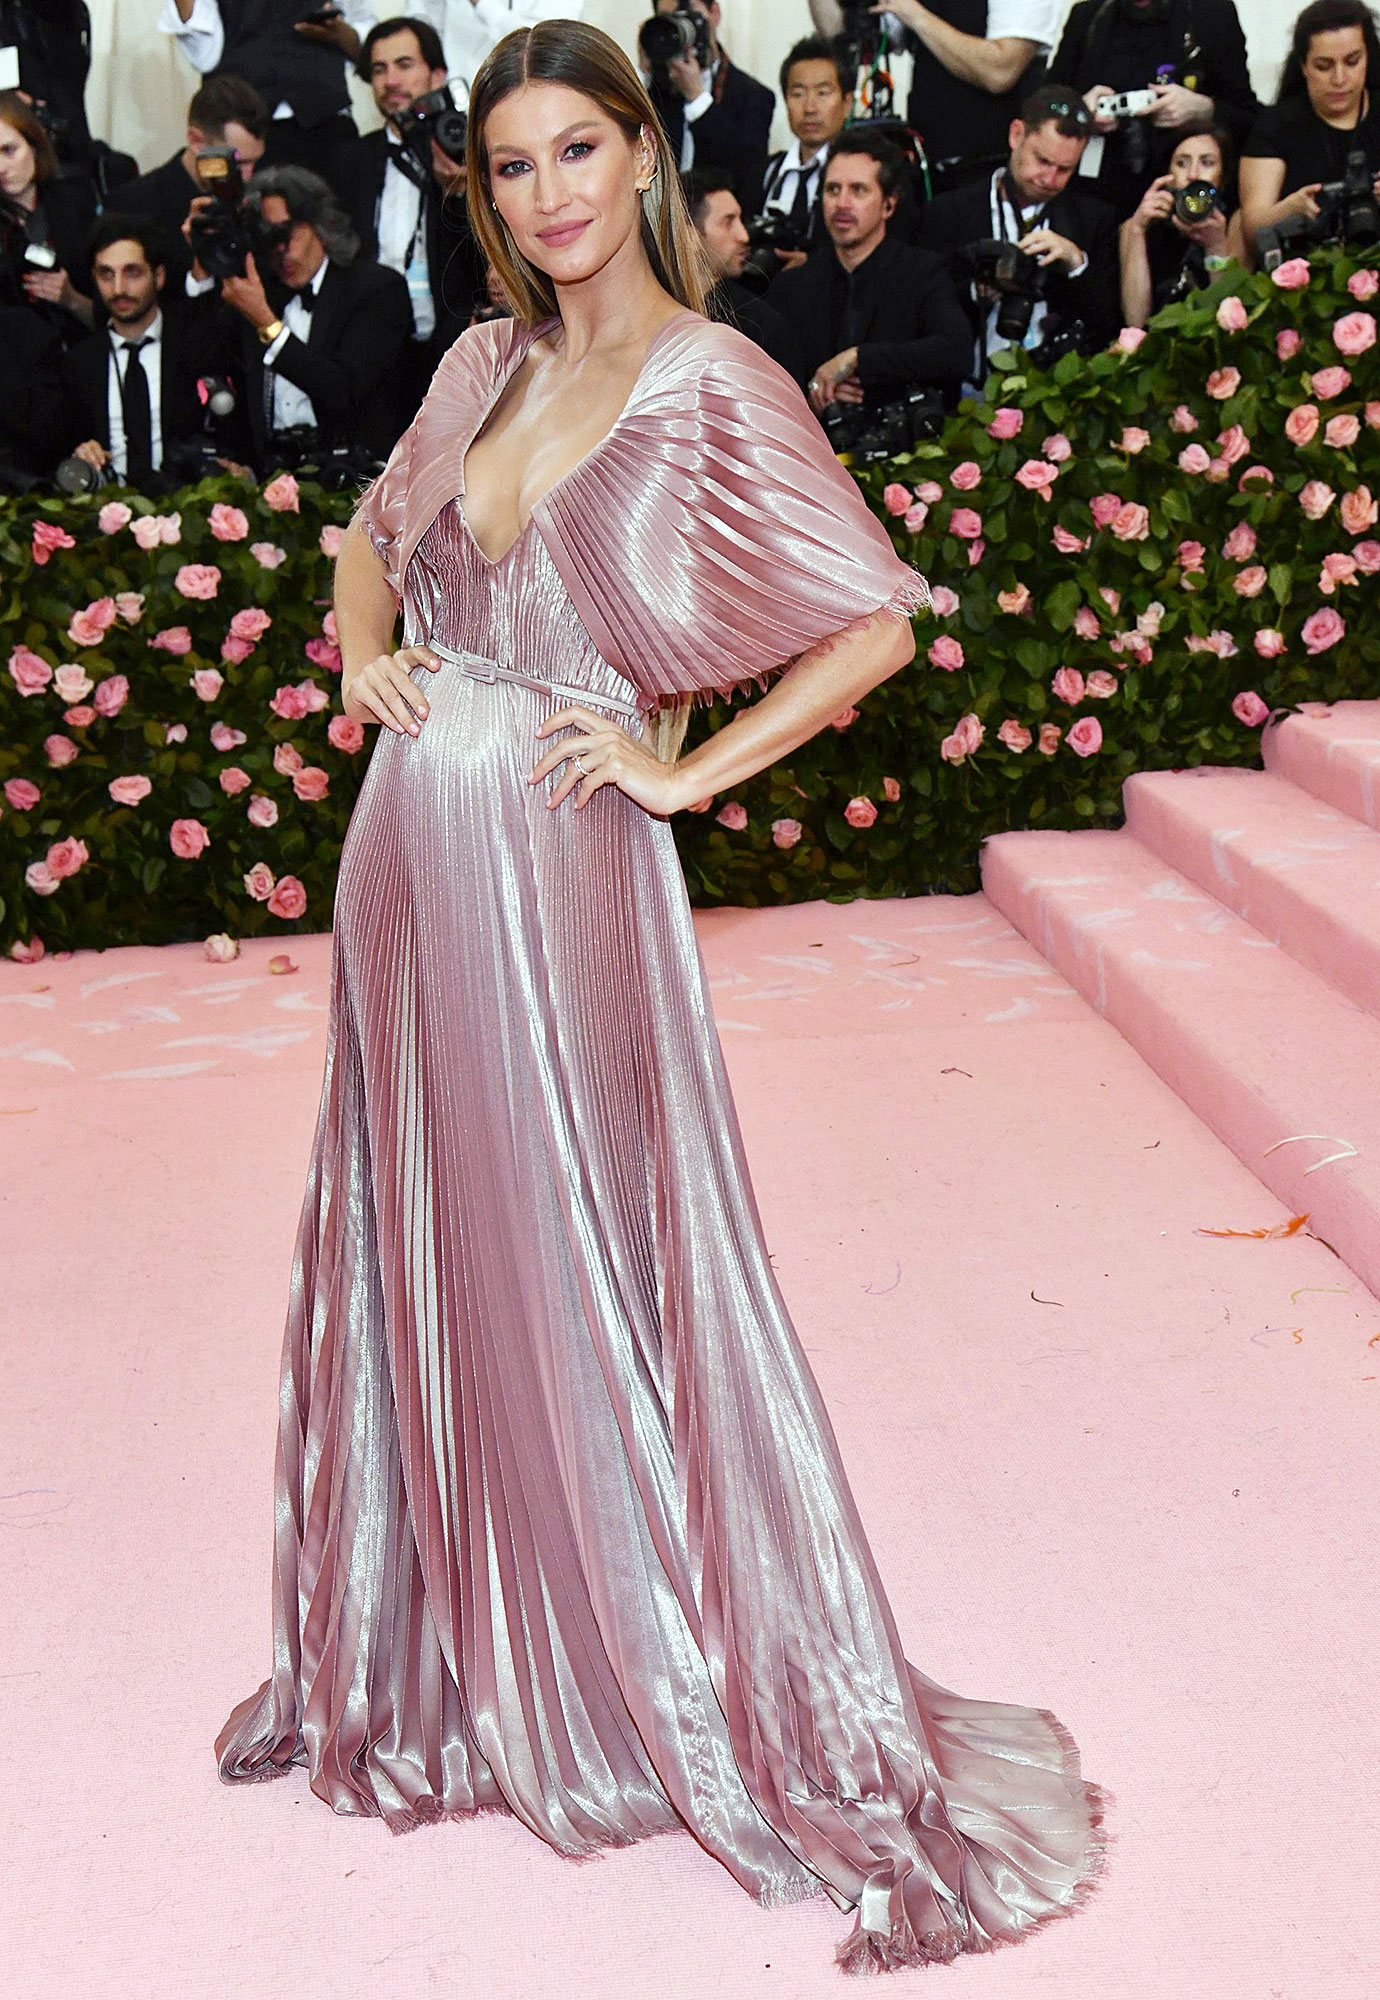 Gisele Bundchen at MET Gala 2019 Celebrity Pilates Instructor Nonna GleyzerShares How to Get Your Mind and Body in Shape